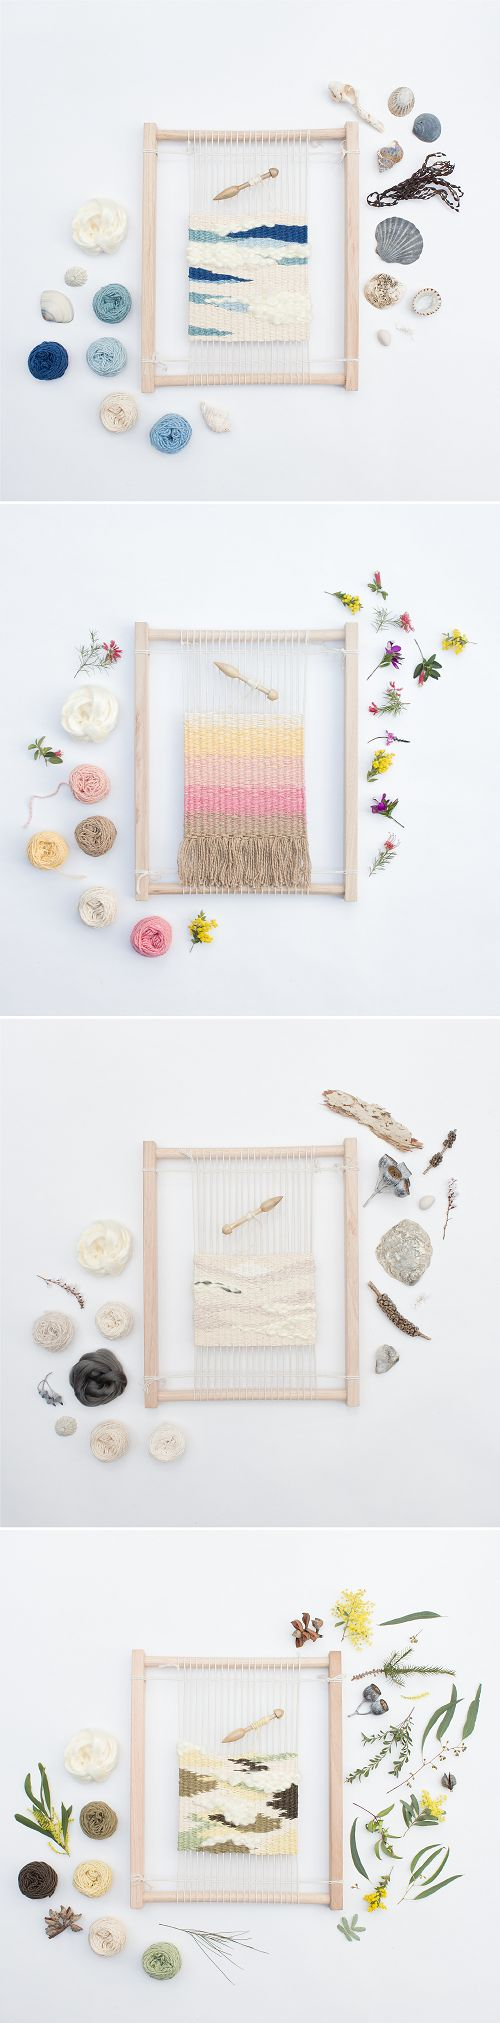 DIY Eco Weaving Kit for beginners by Alchemy.